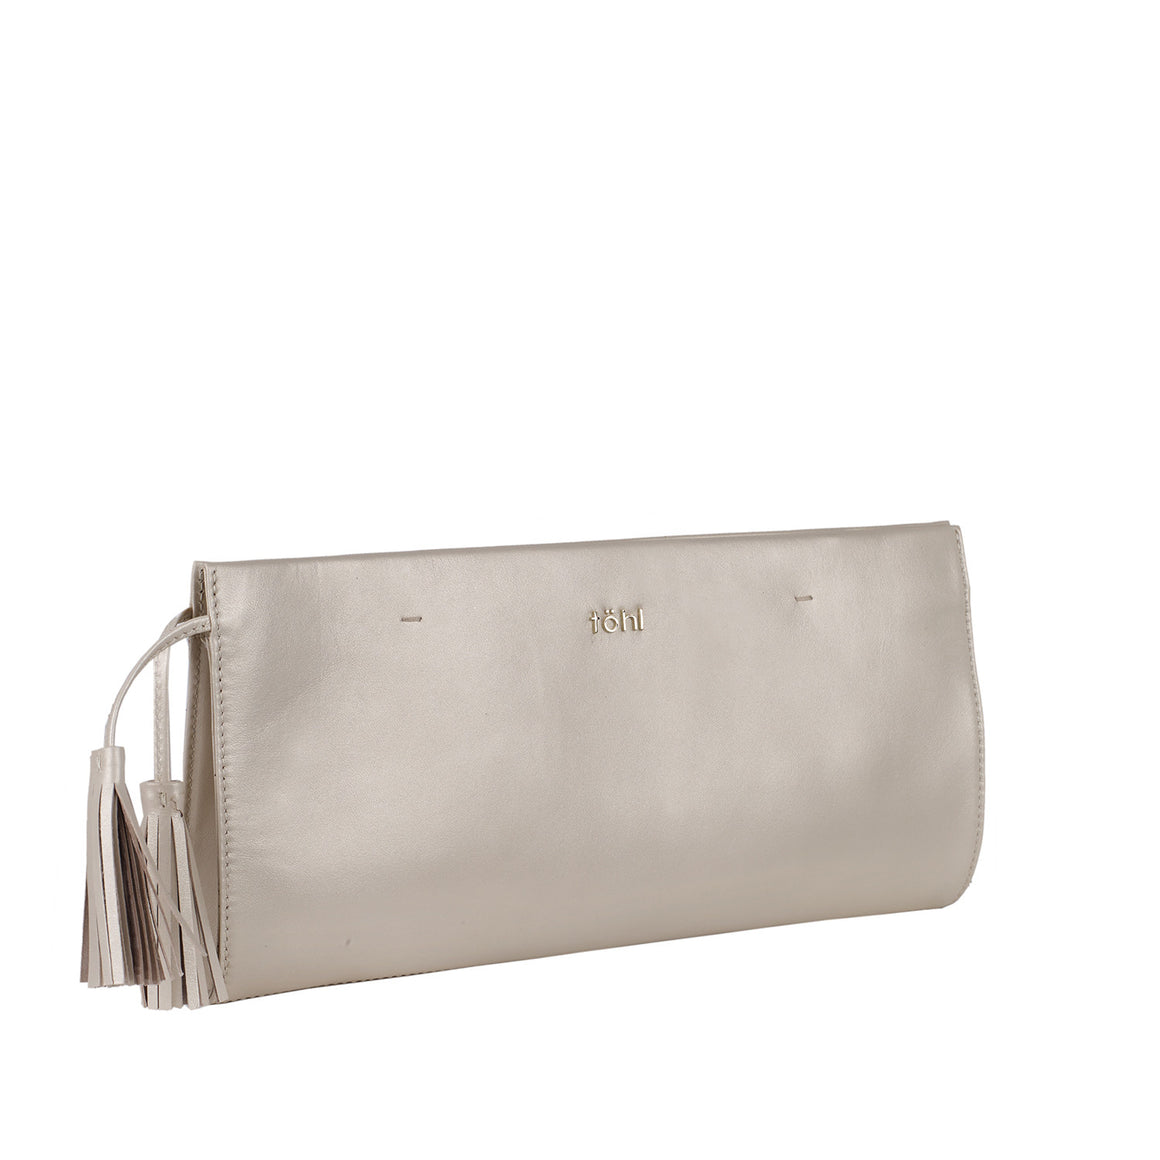 CH 0005 - TOHL DEMI WOMEN'S TASSELLED GRIP CLUTCH - CHAMPAGNE PEARL